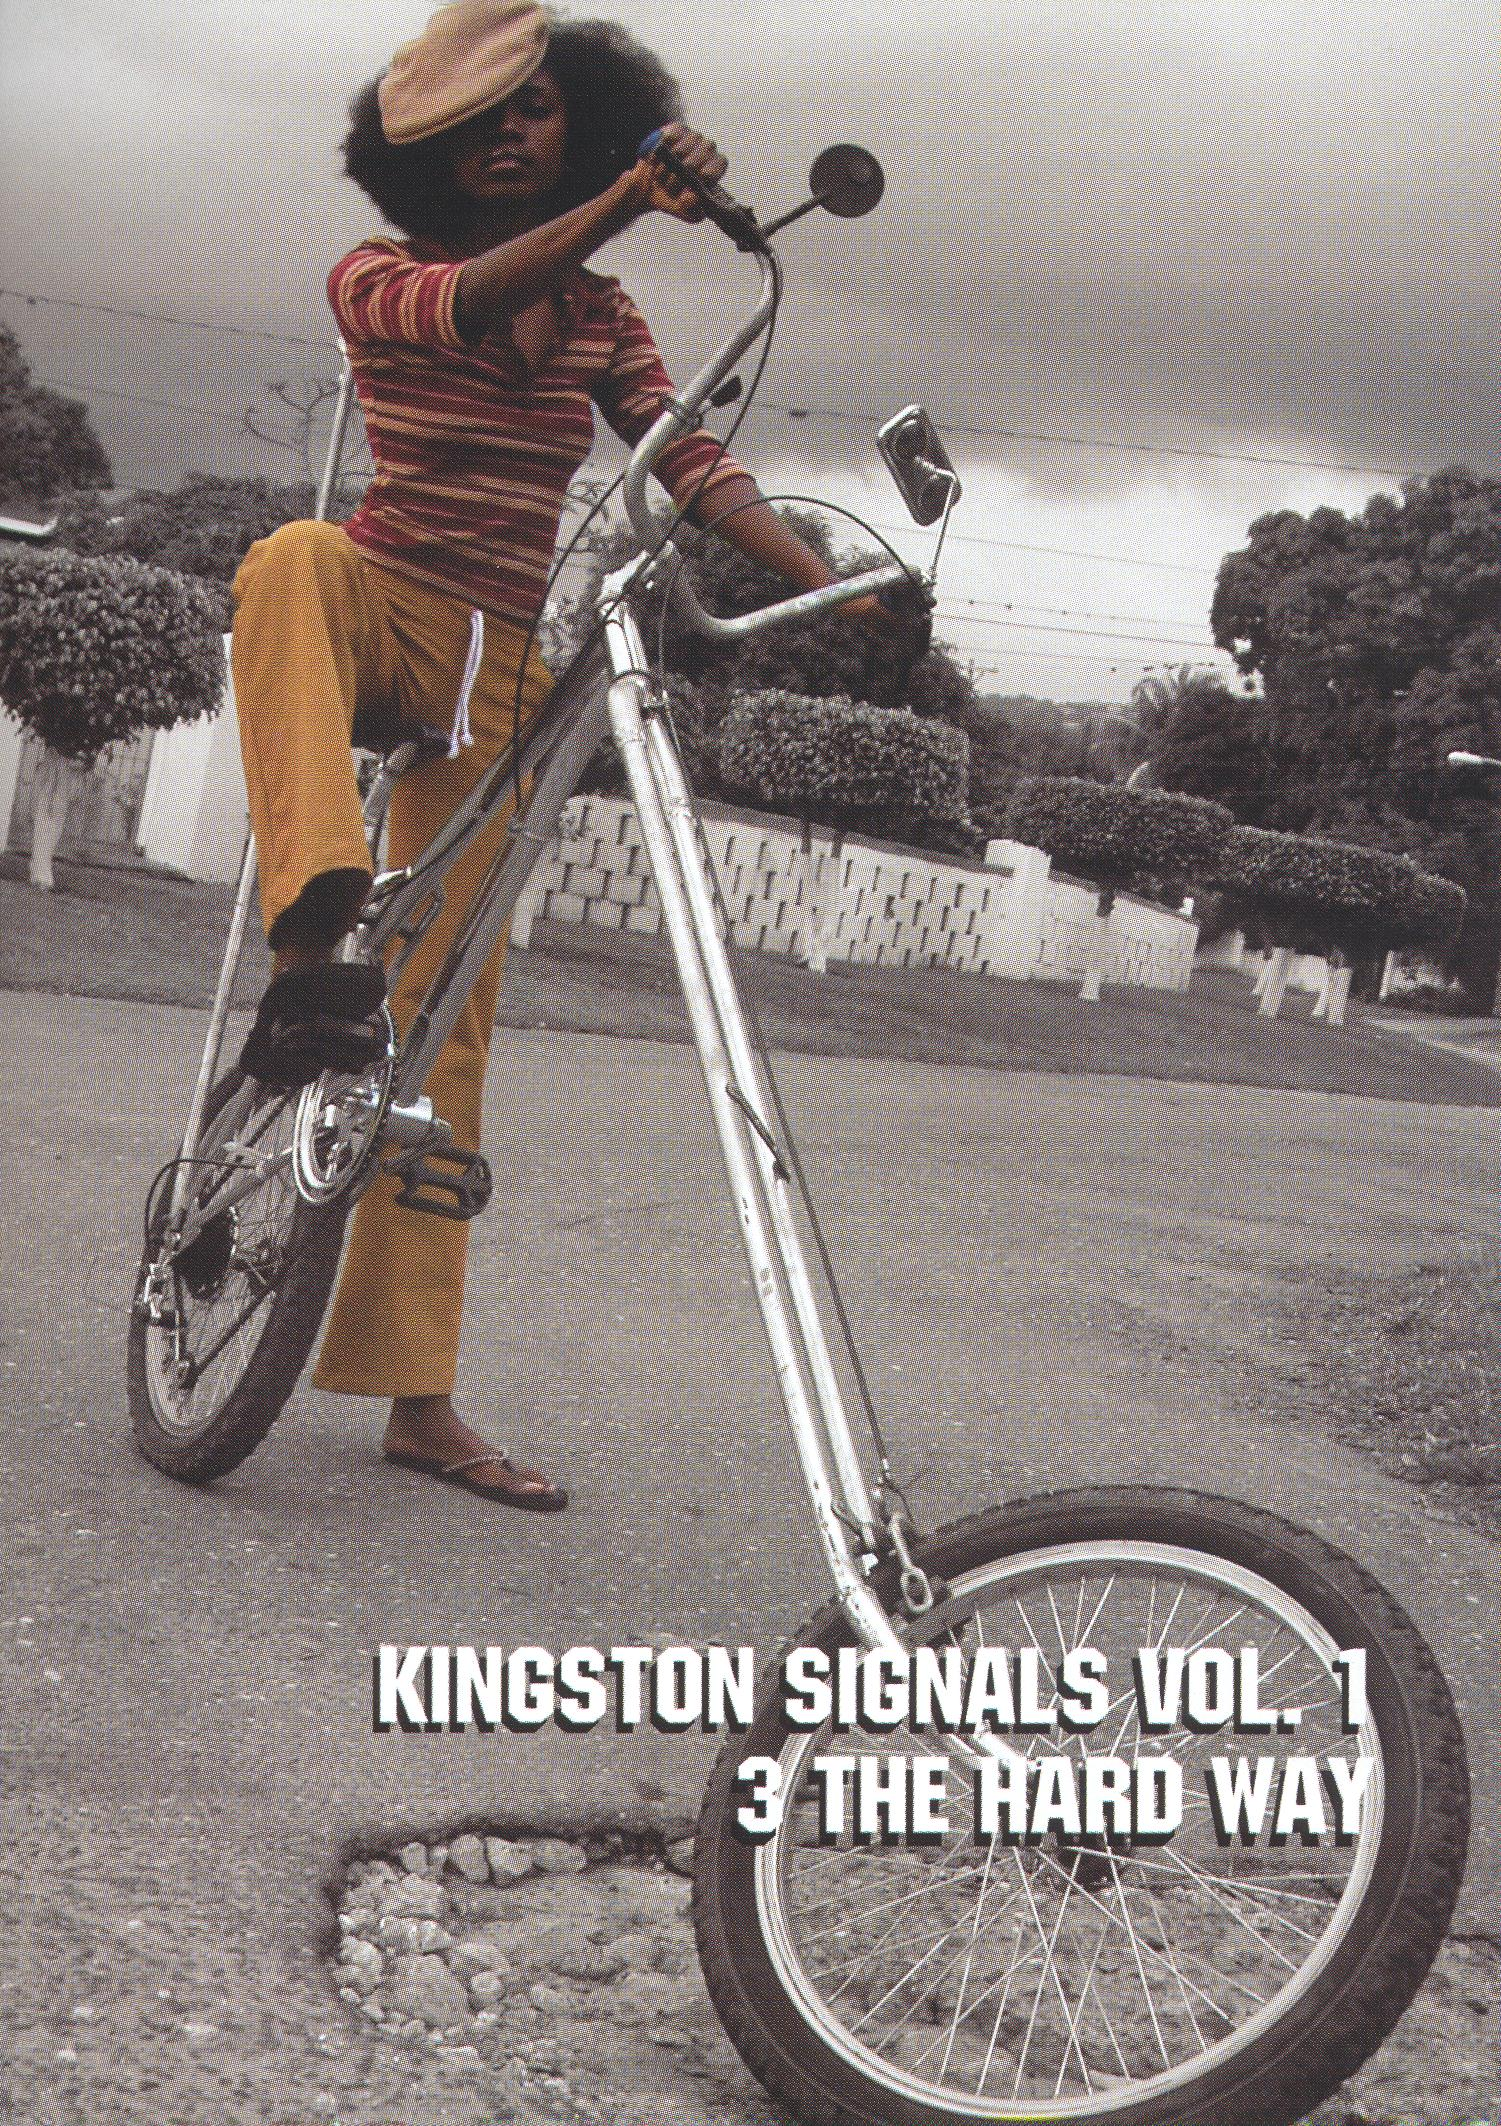 Kingston Signals, Vol. 1: 3 the Hard Way